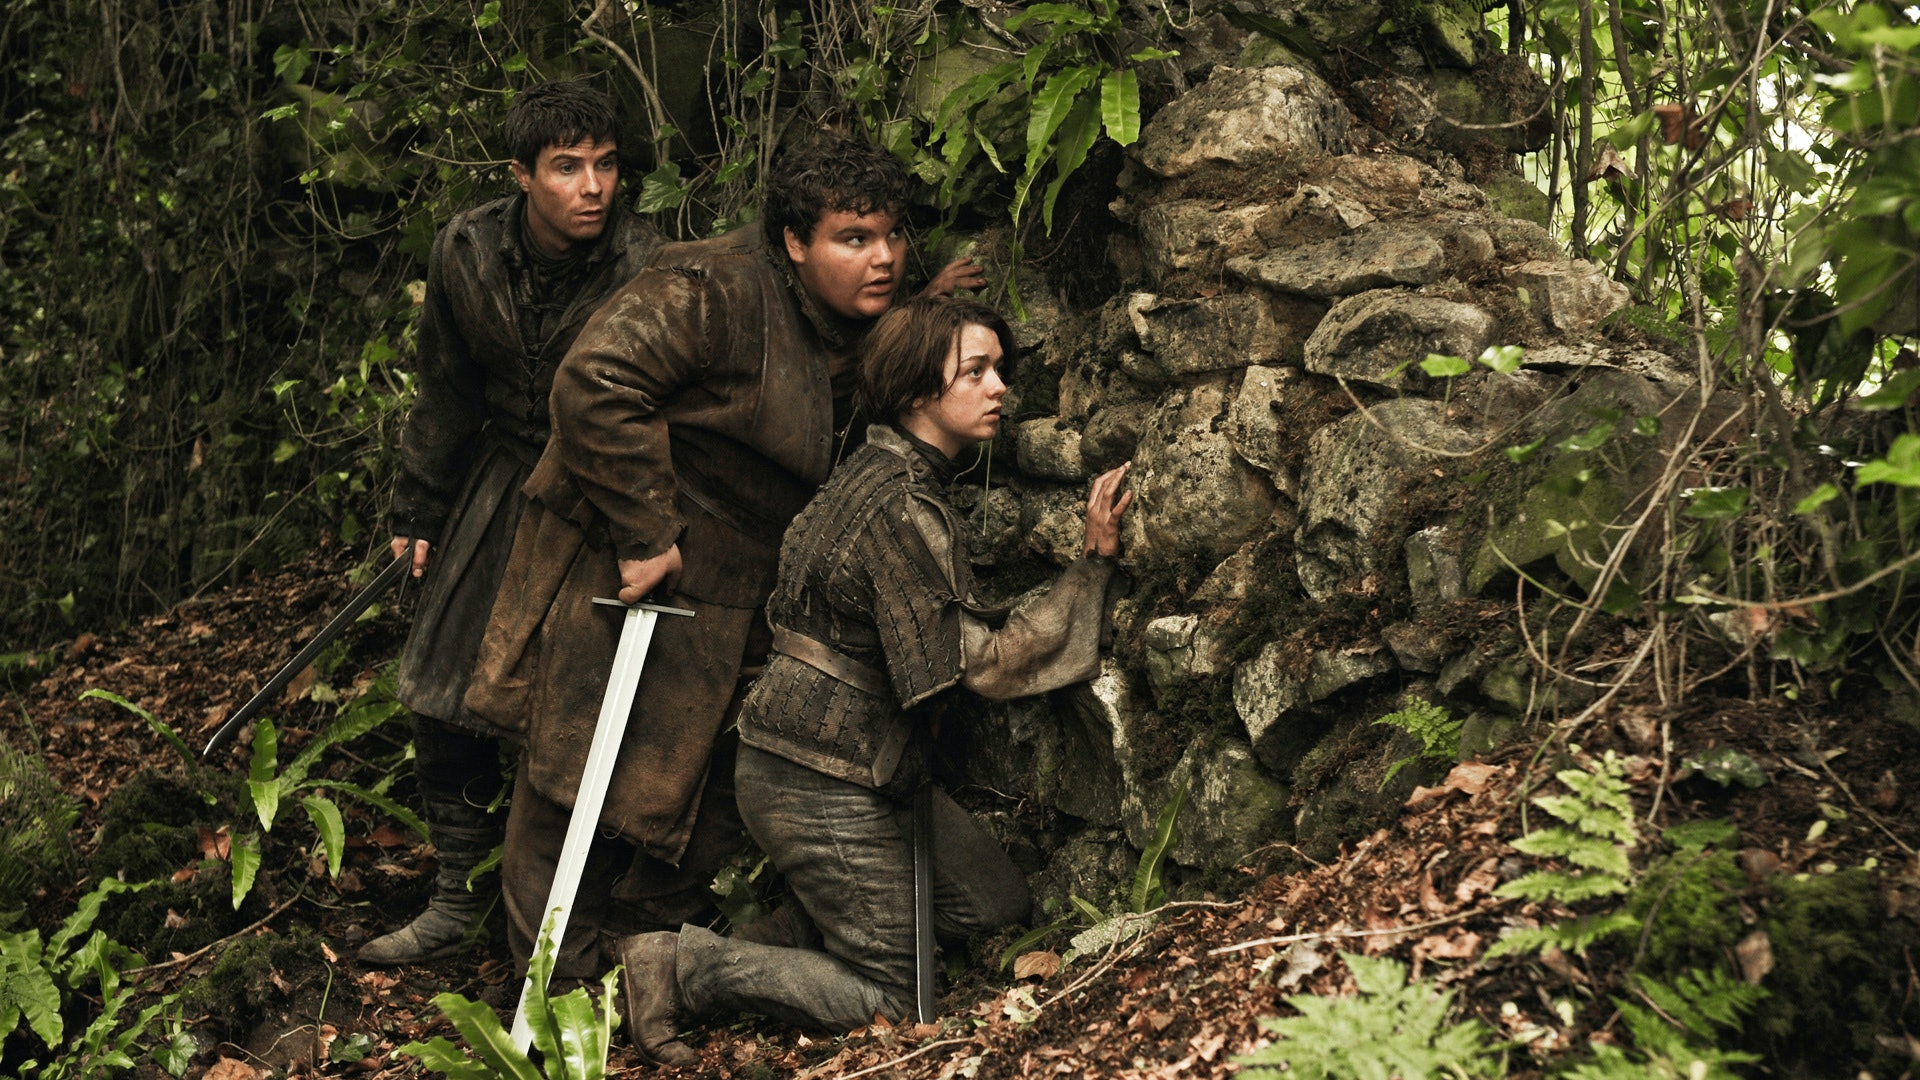 Joe Dempsie as Gendry Waters and Maisie Williams as Arya Stark in 'Game of Thrones' Season 3